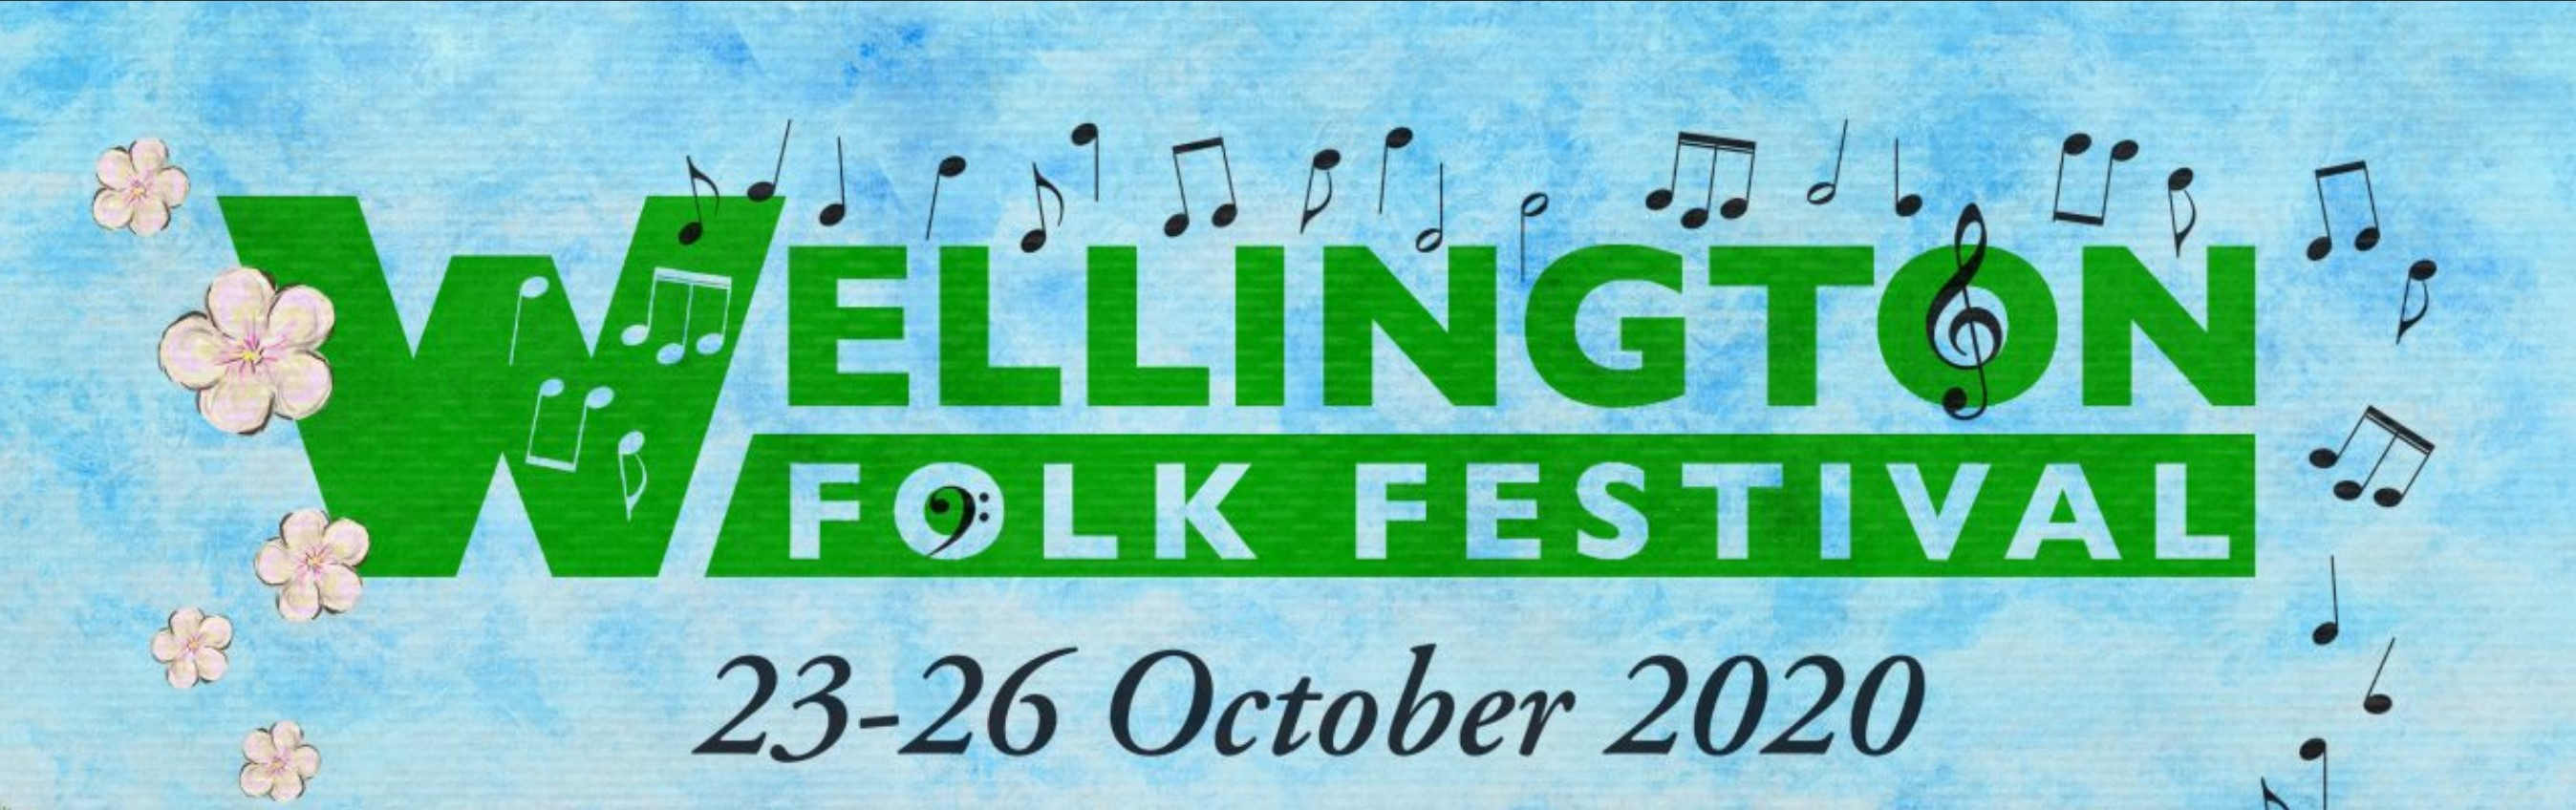 Wellington Folk Festival